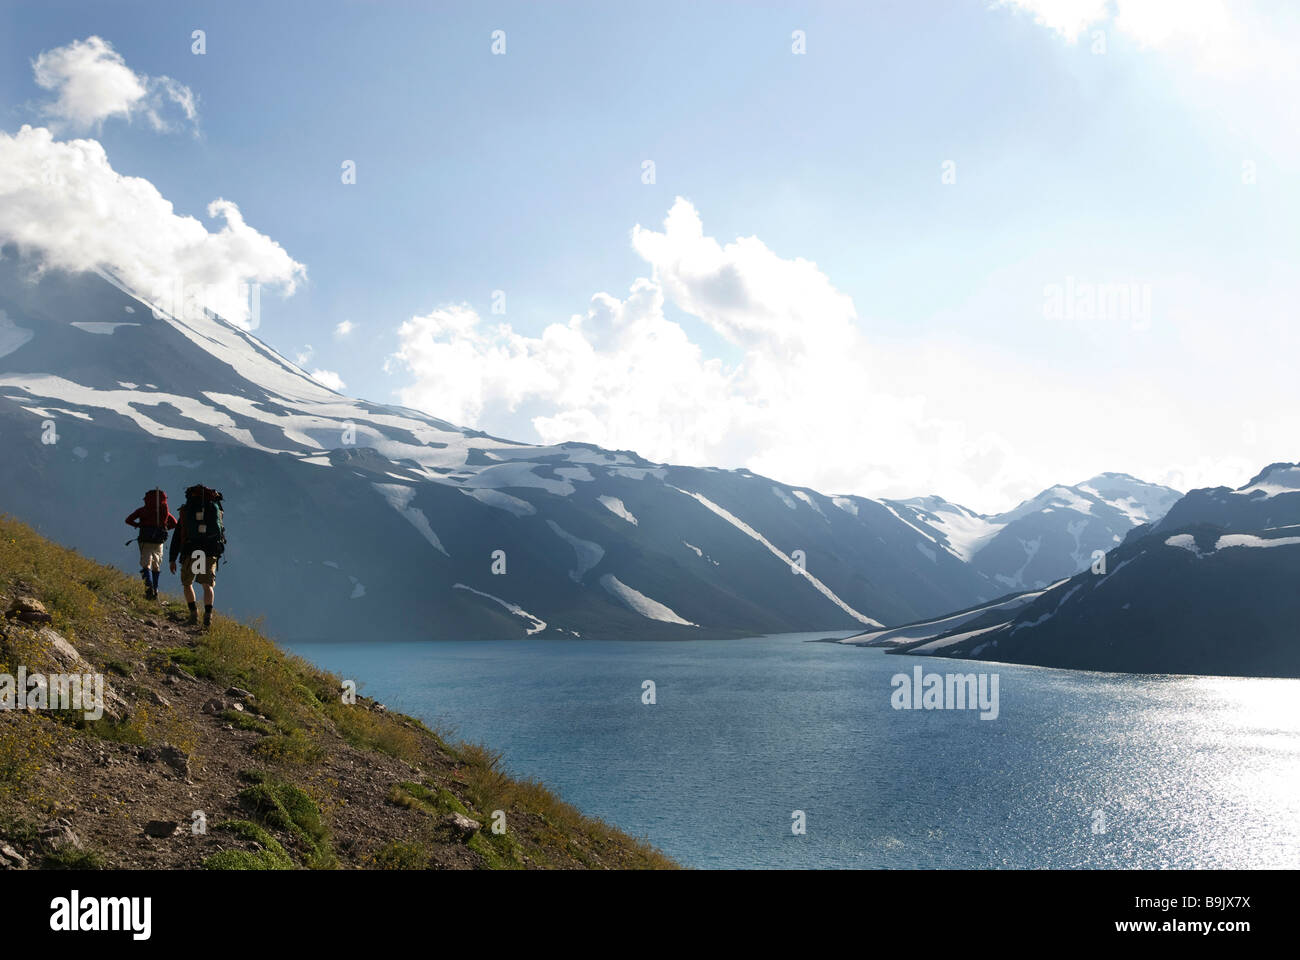 Two backpackers follow a trail around an alpine lake near the border of, Chile and Argentina. - Stock Image